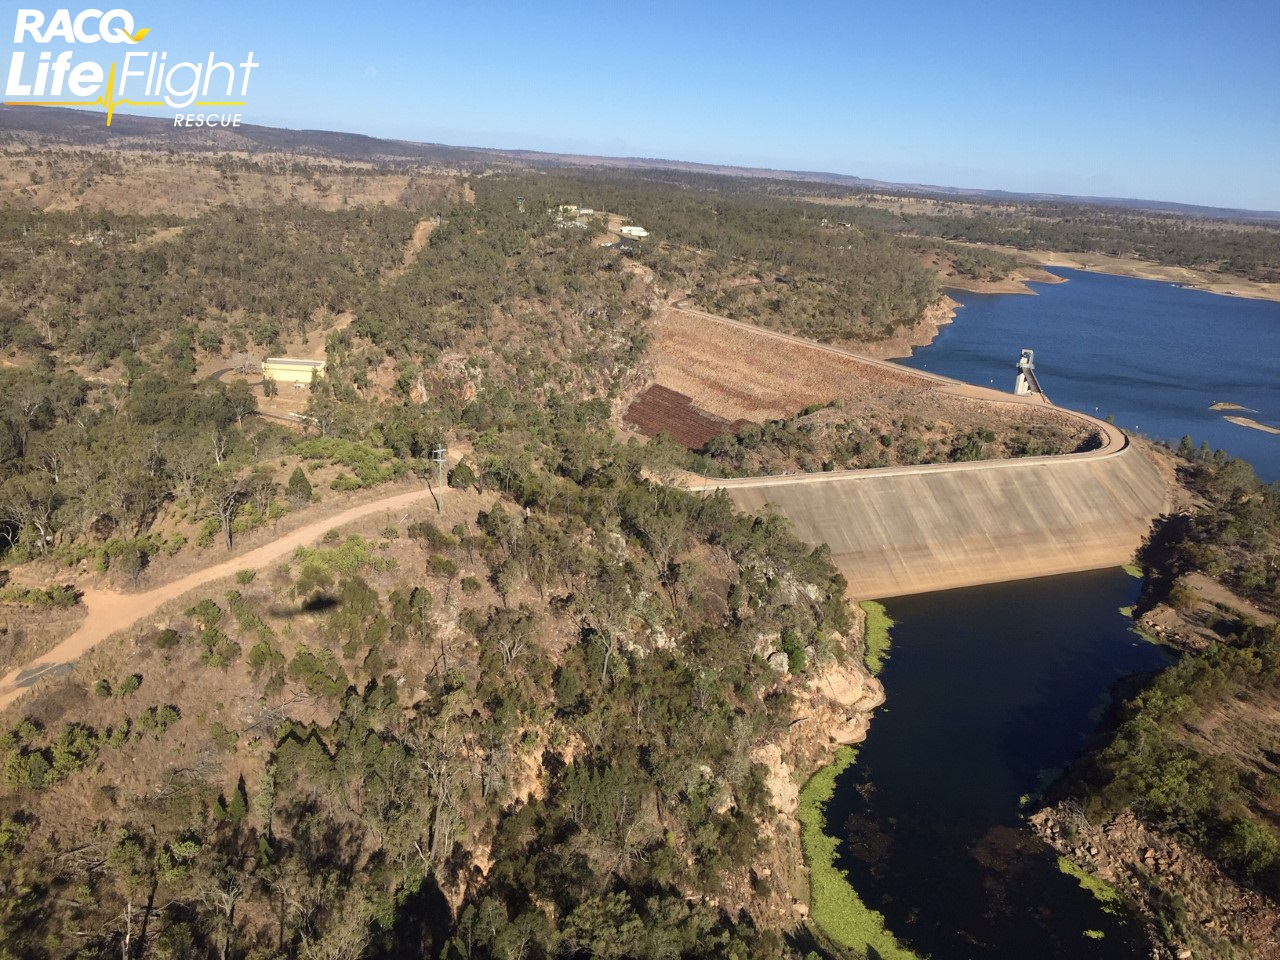 Boondooma Dam as seen from the LifeFlight helicopter service during the search.